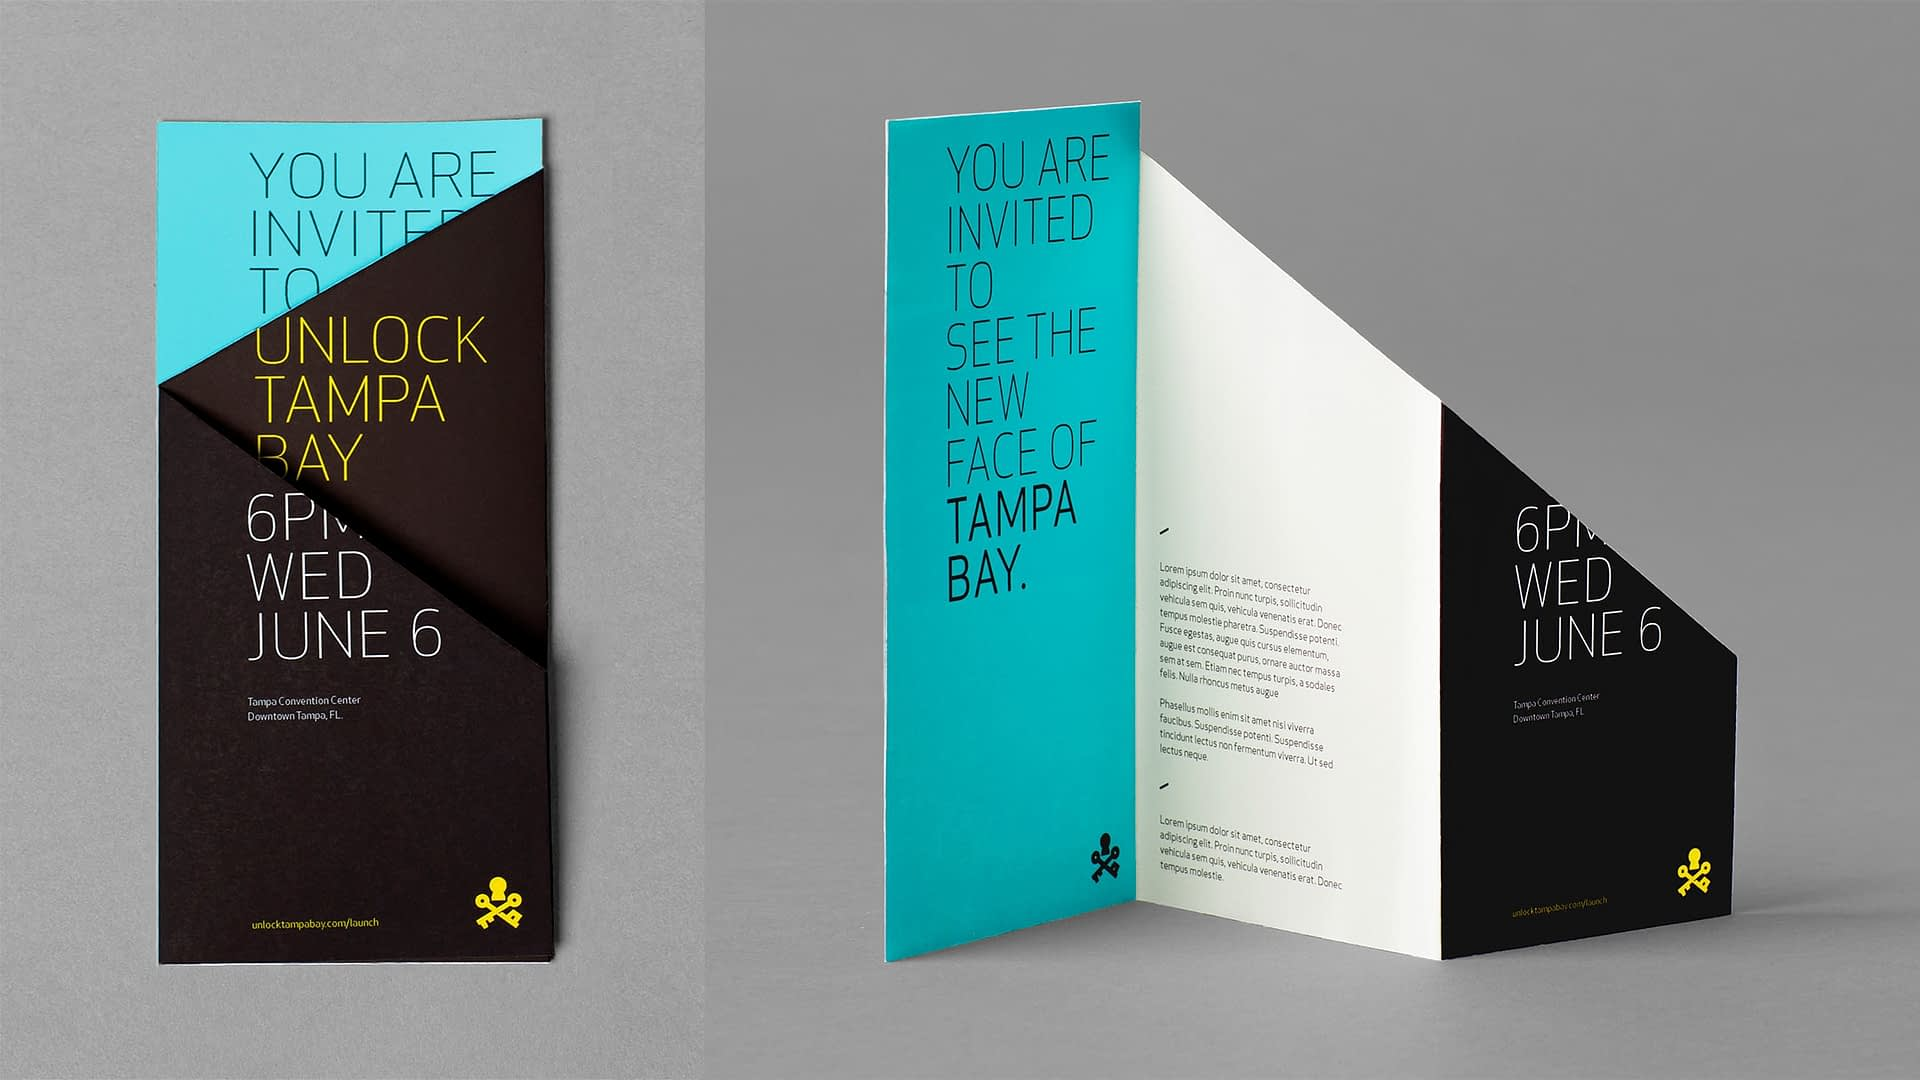 Visit Tampa Bay branded launch invitation - a portion of our destination marketing efforts